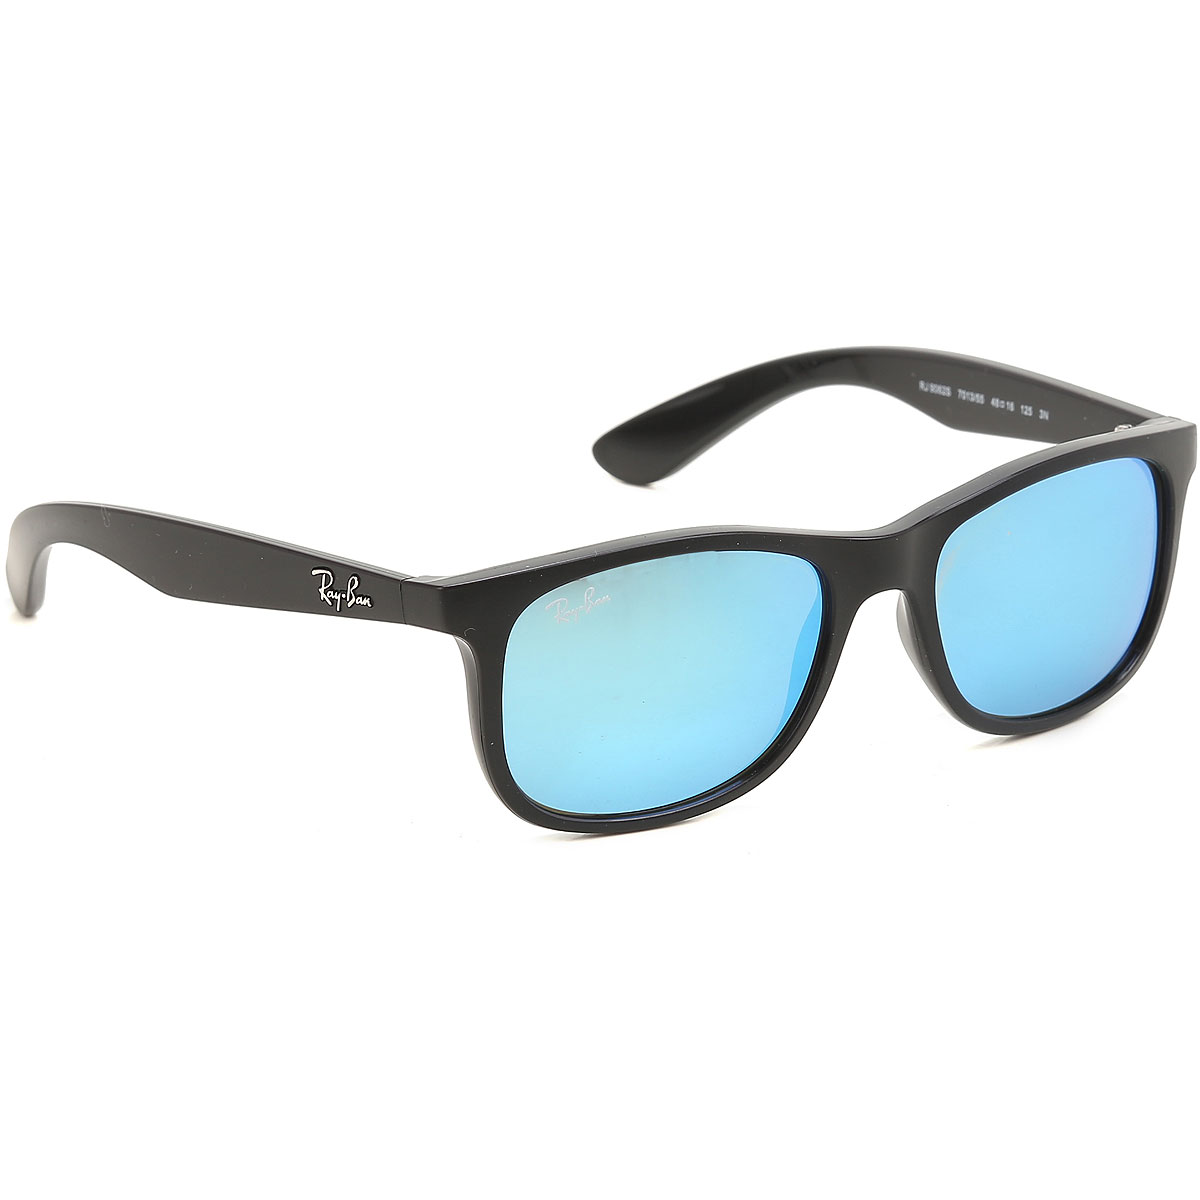 Ray Ban Junior Kids Sunglasses for Boys On Sale, Matte Black, 2017 USA-407352